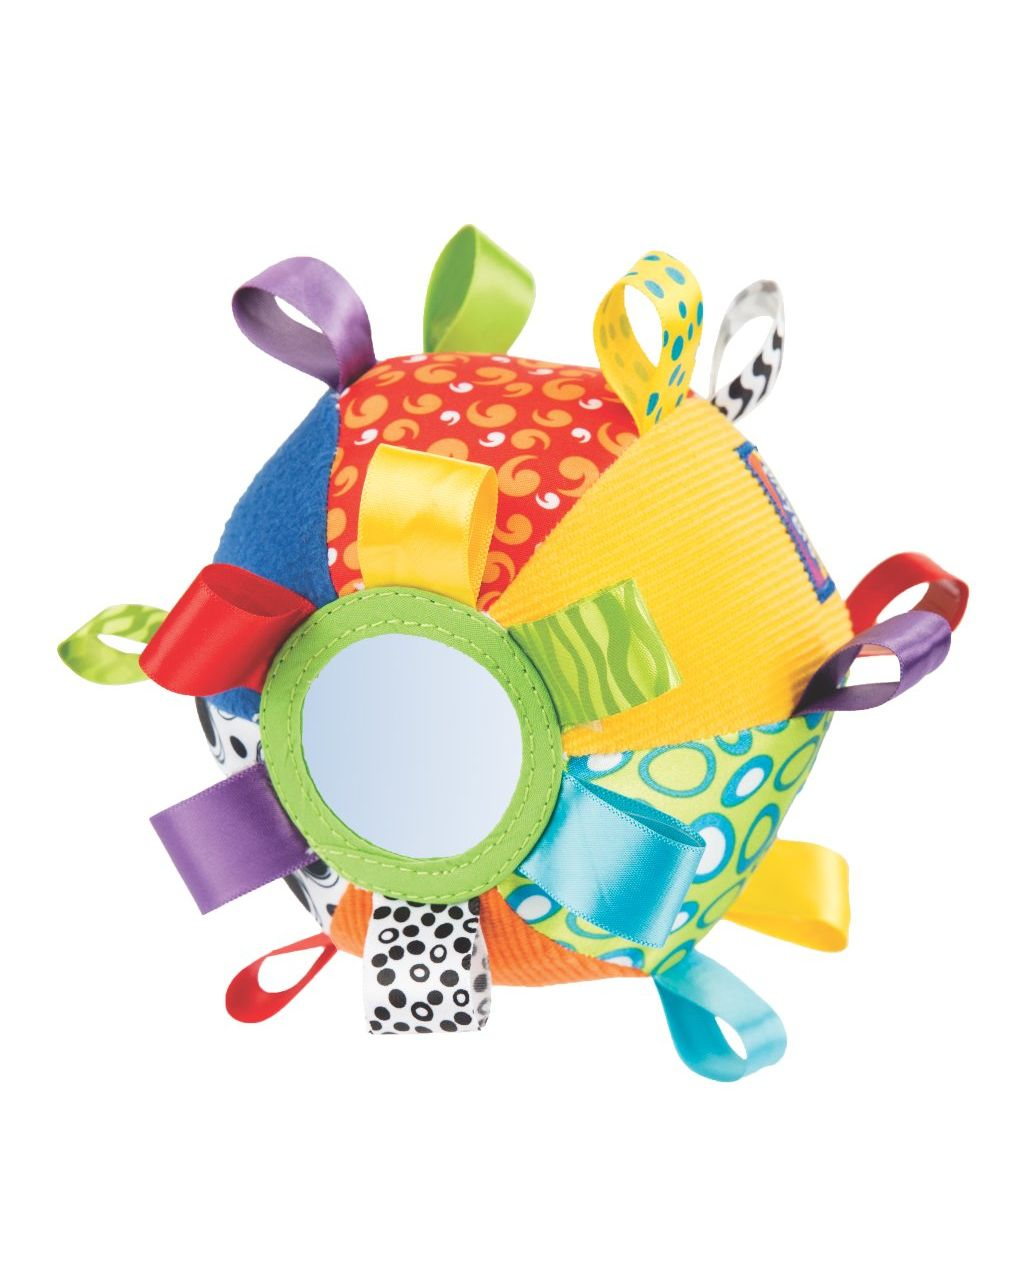 Loopy loops ball - Playgro